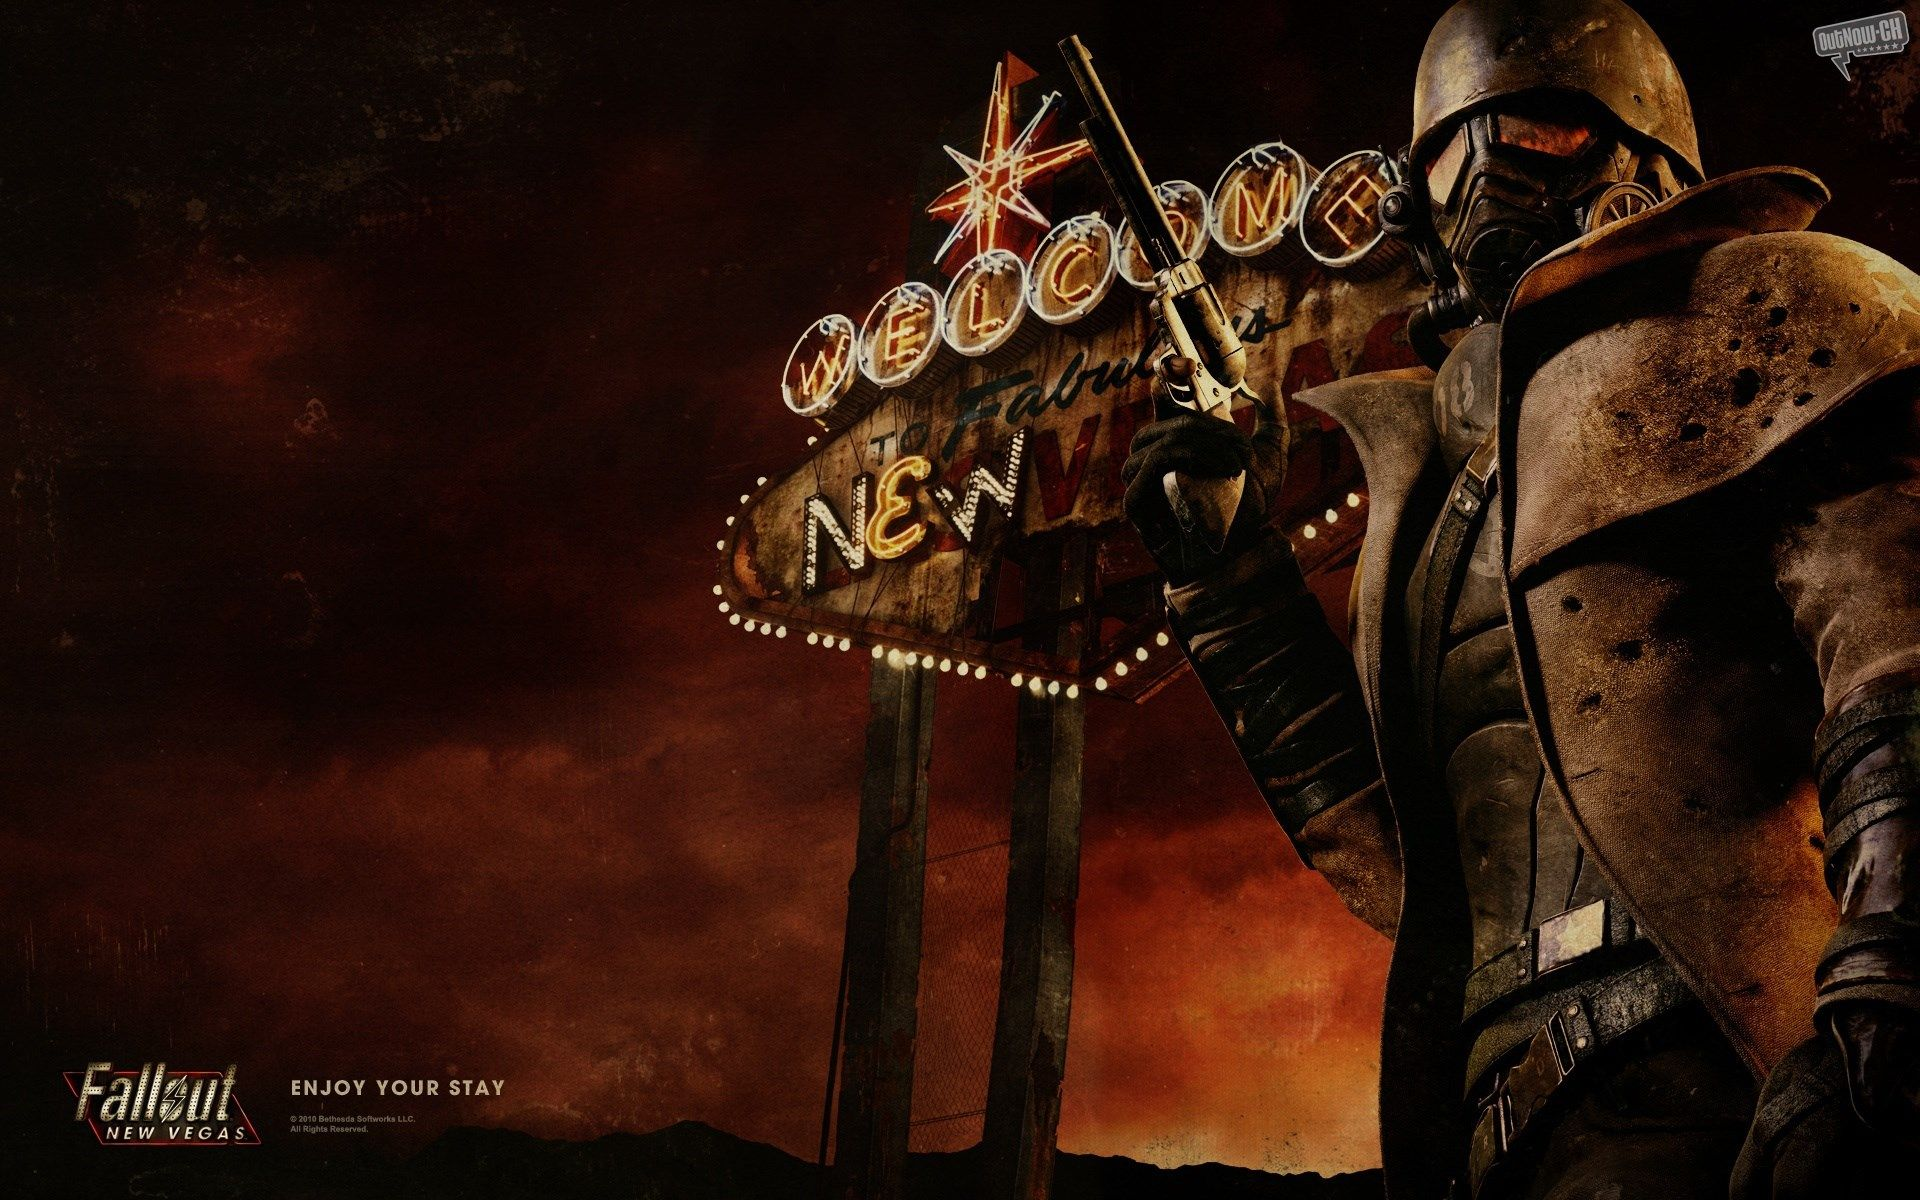 Backgrounds In High Quality Fallout New Vegas Picture 1920 X 1200 761 Kb Fallout New Vegas Fallout Fallout Game